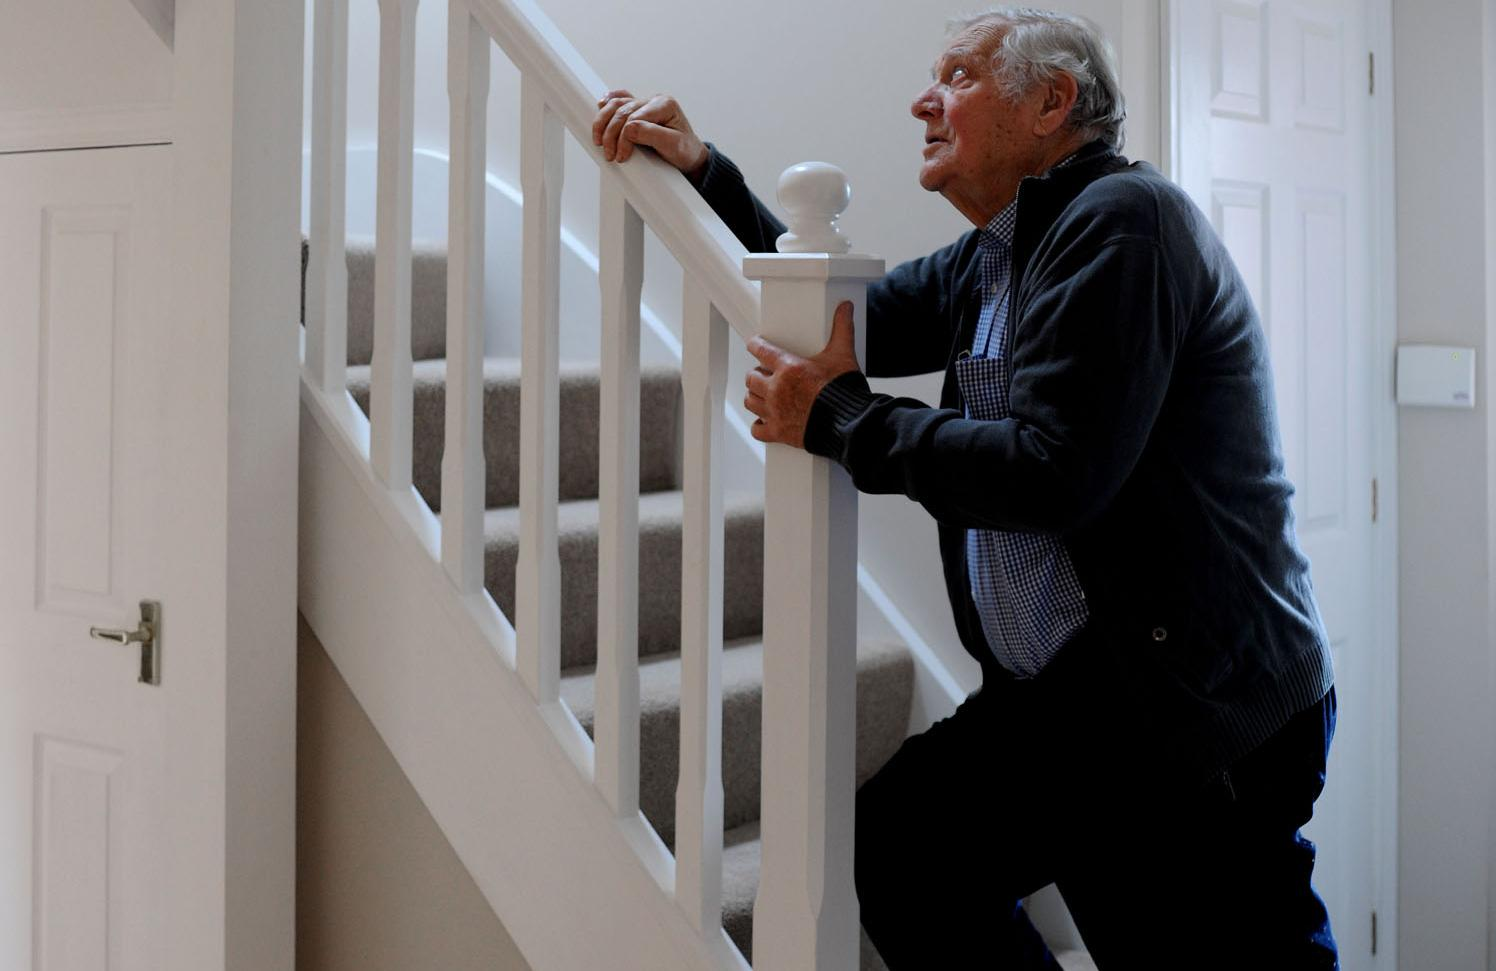 Elderly man struggles with stairs